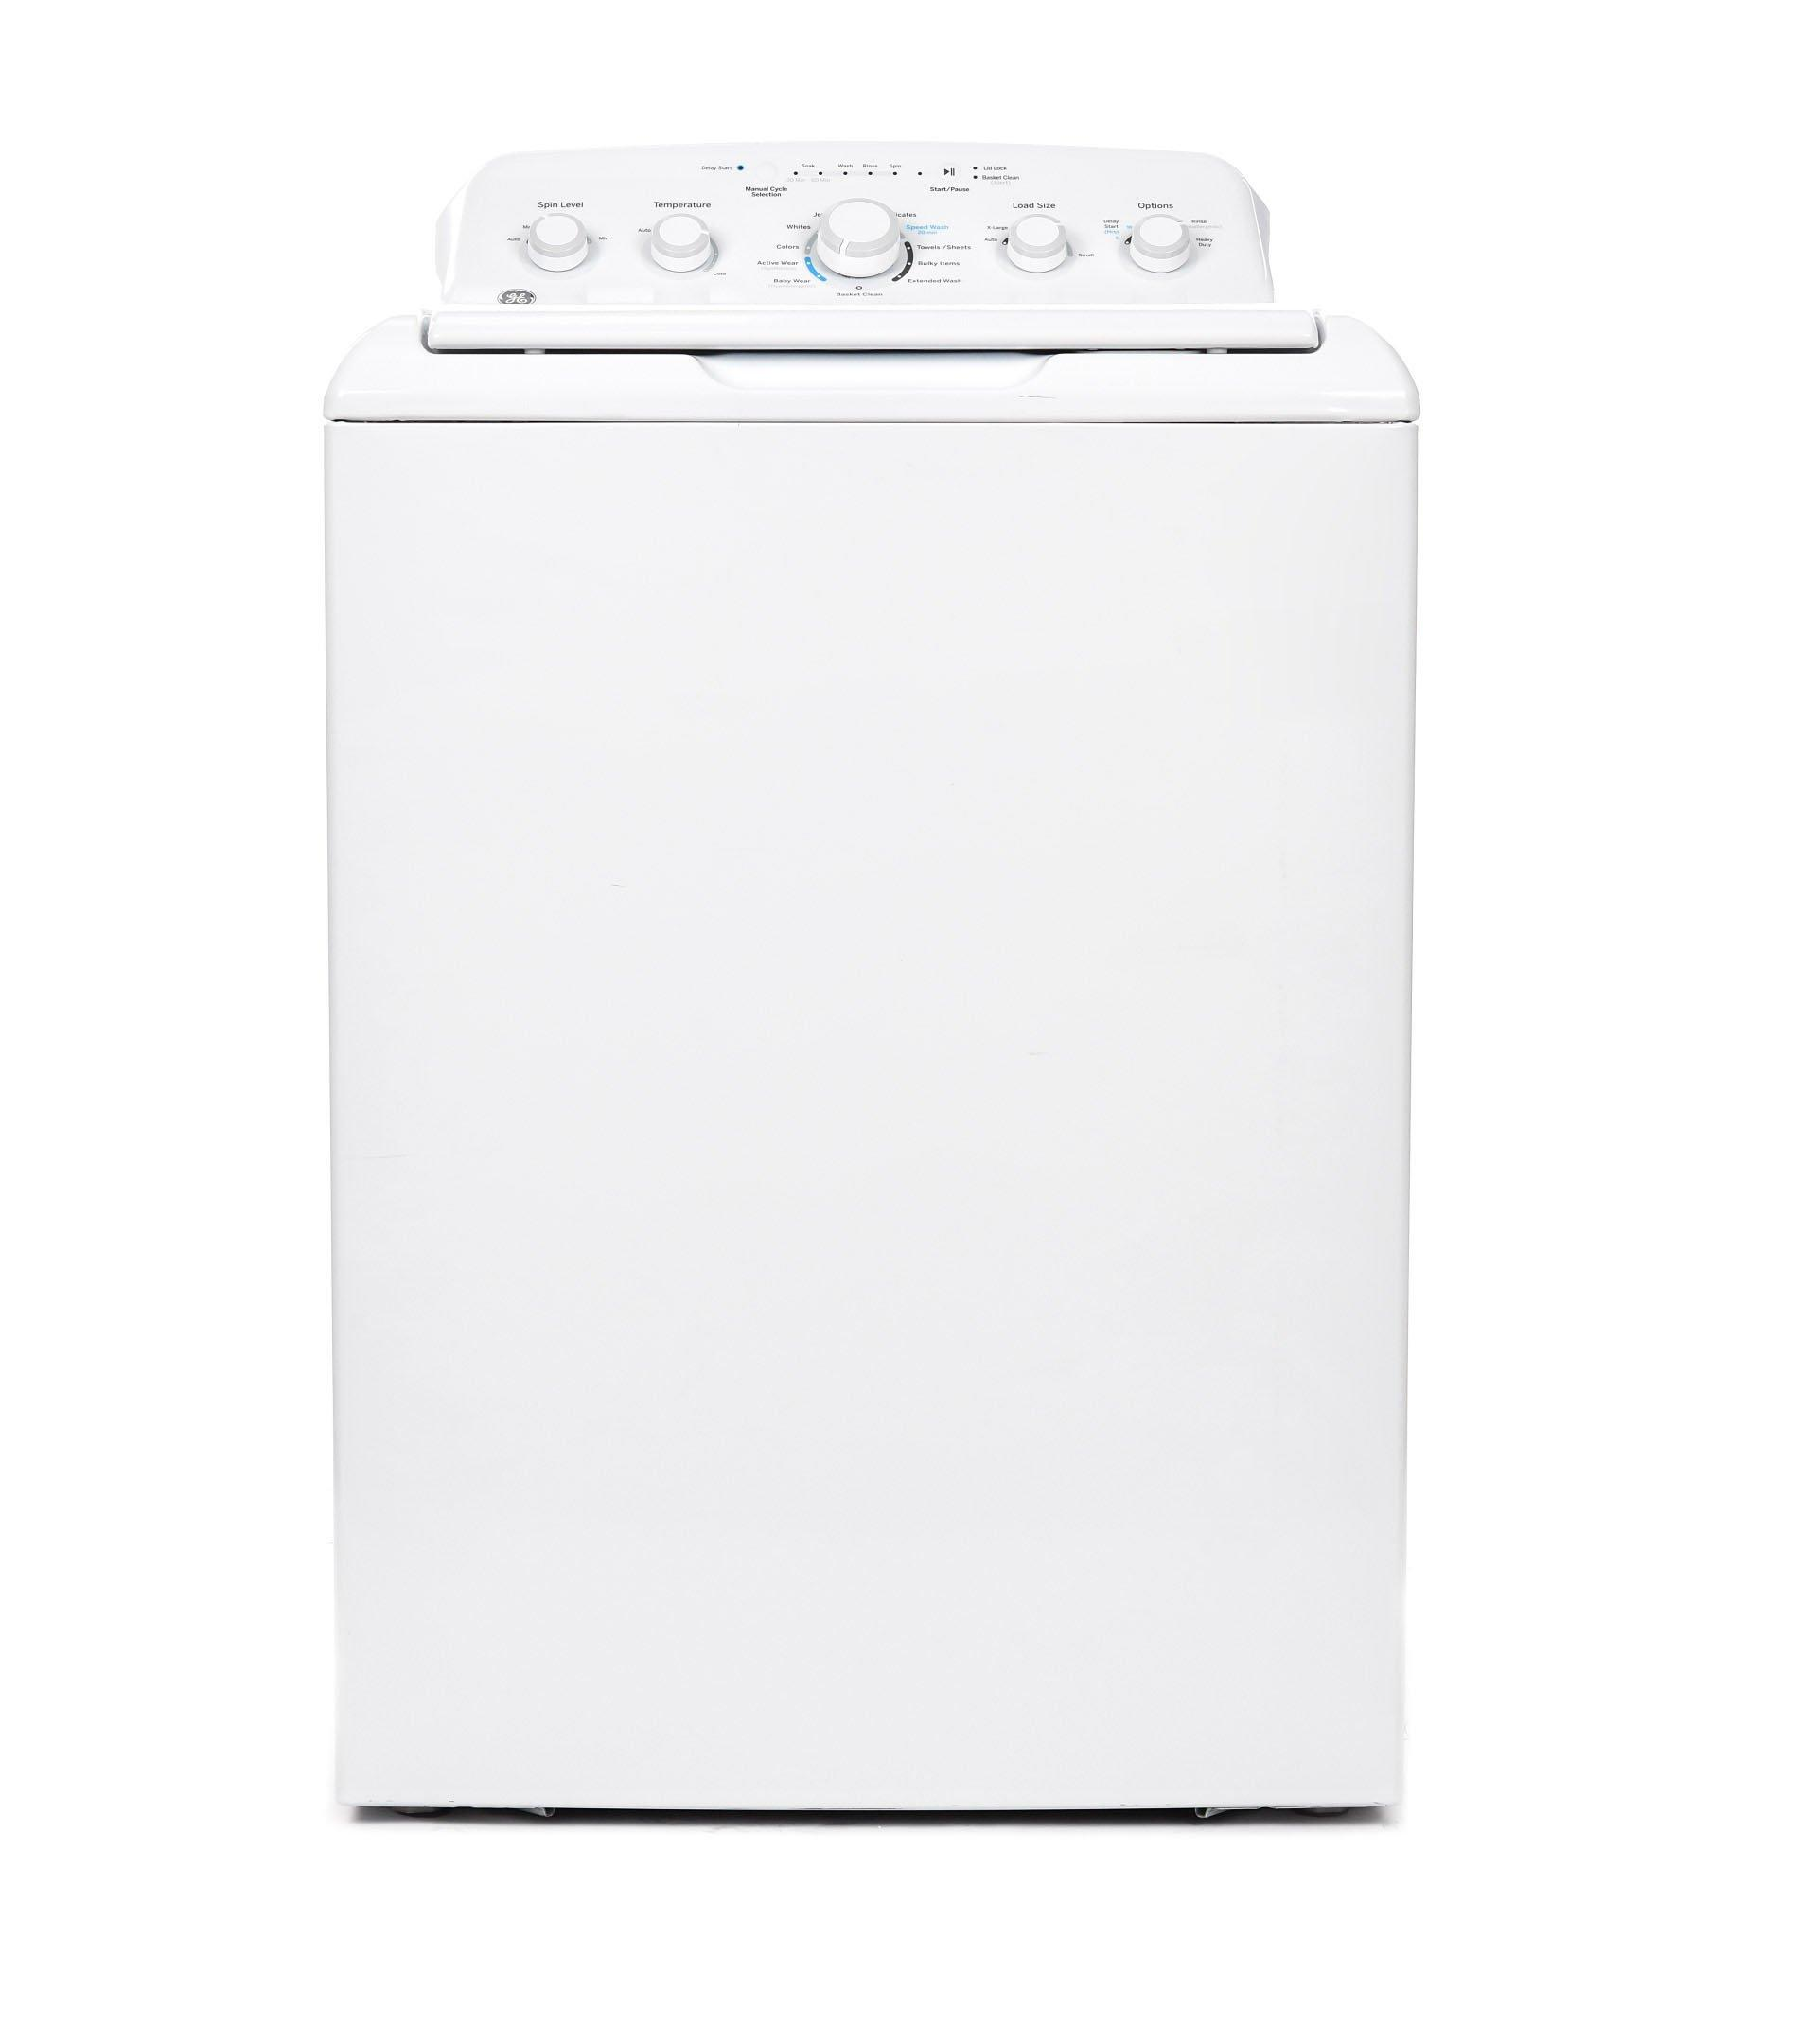 GE Top Load Washer, 9 kg, Heavy Duty Motor,White